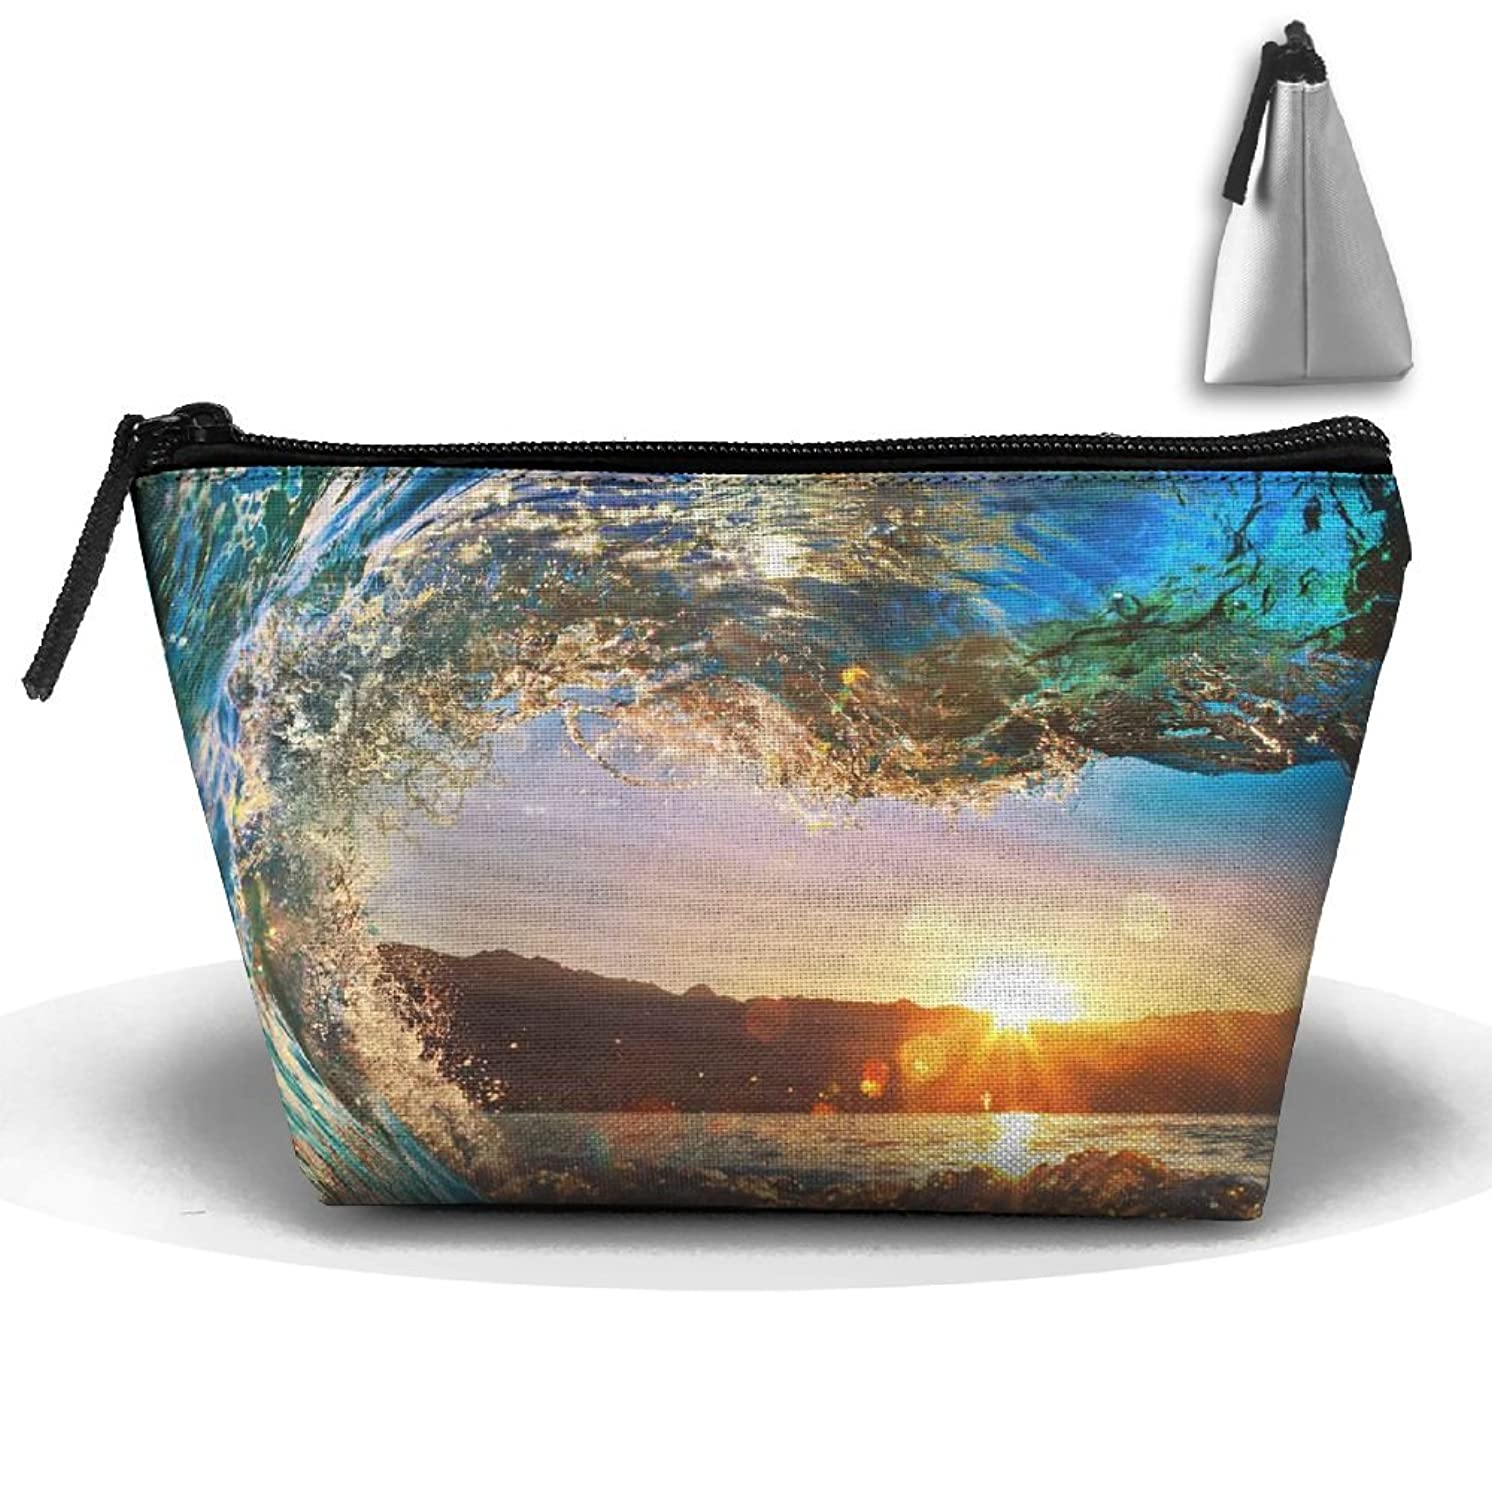 RobotDayUpUP Sunset Surf Double Panel Womens Travel Cosmetic Bag Portable Toiletry Brush Storage Multipurpose Pen Pencil Bags Accessories Sewing Kit Pouch Makeup Carry Case